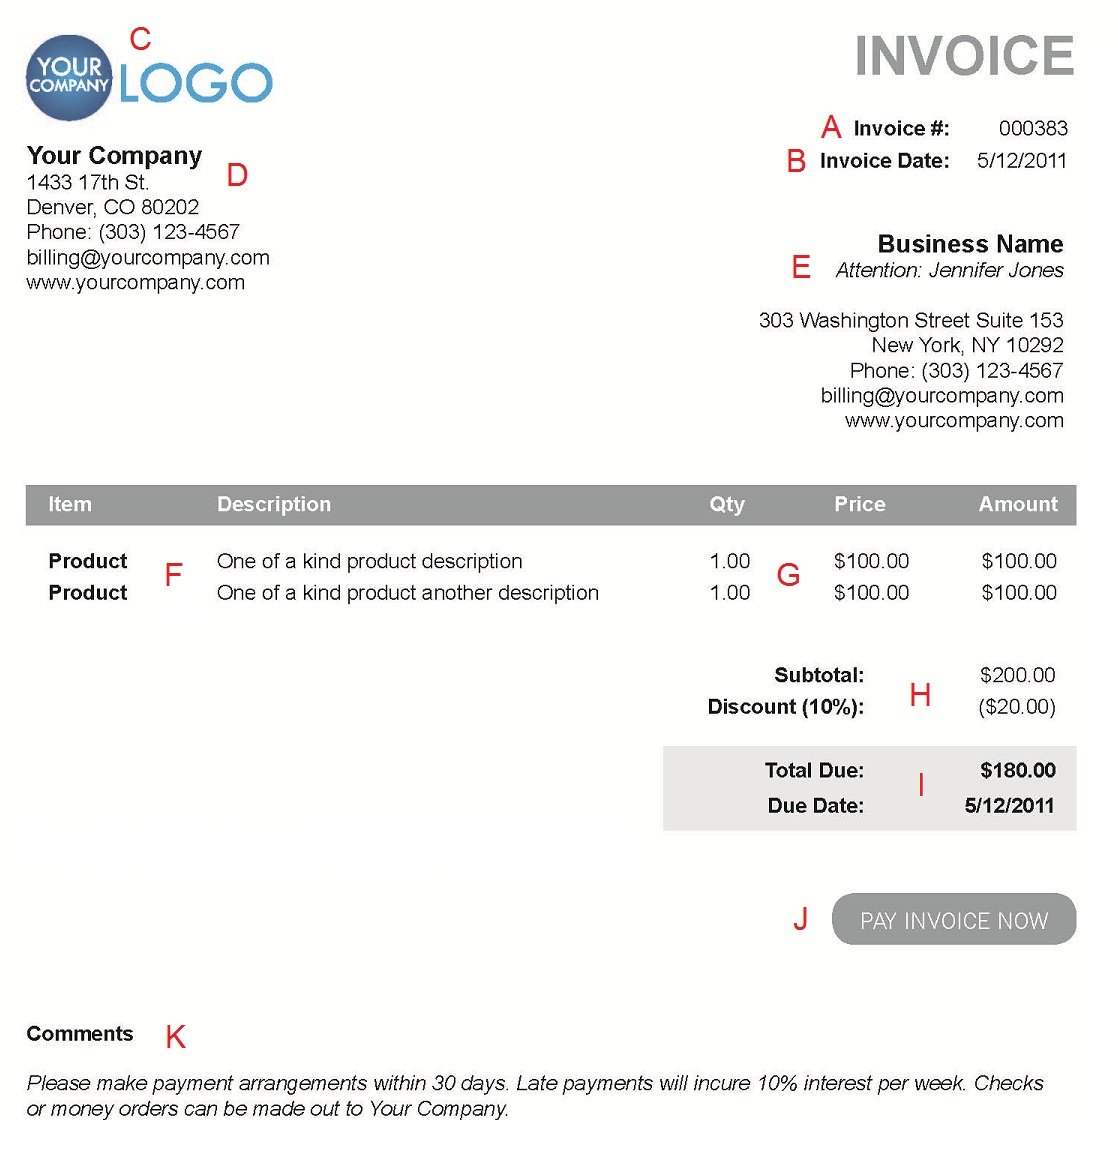 Reliefworkersus  Gorgeous The  Different Sections Of An Electronic Payment Invoice With Handsome A  With Comely Receipt For Purchase Also Stir Fry Receipt In Addition Receipt Accounting Definition And Tn Gross Receipts Tax As Well As Rent Deposit Receipt Additionally Stamp Duty Receipt From Paysimplecom With Reliefworkersus  Handsome The  Different Sections Of An Electronic Payment Invoice With Comely A  And Gorgeous Receipt For Purchase Also Stir Fry Receipt In Addition Receipt Accounting Definition From Paysimplecom